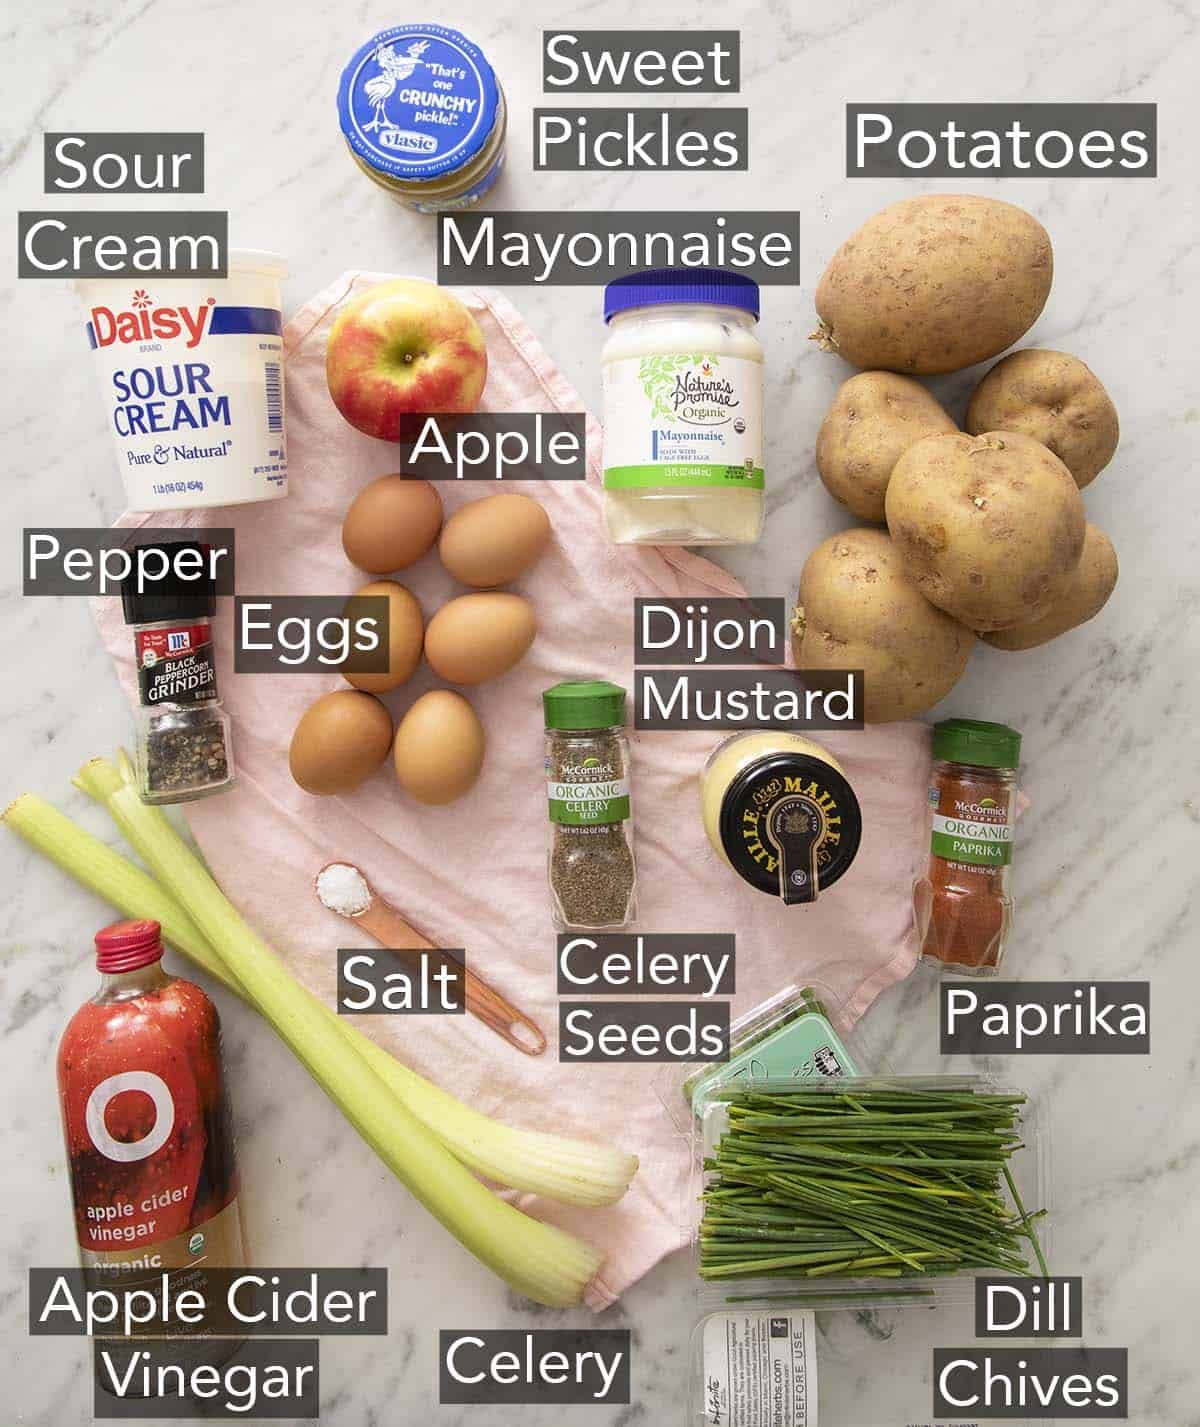 Ingredients for making potato salad on a counter.